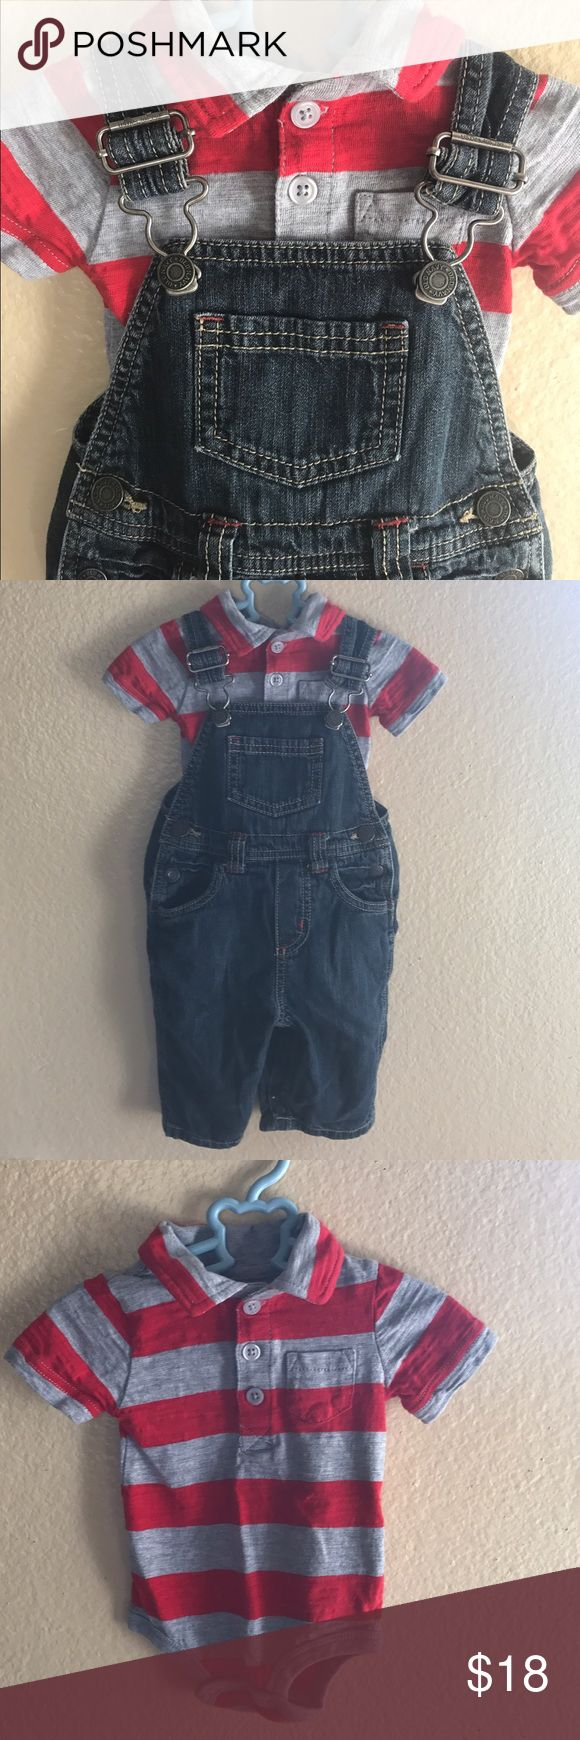 Old Navy overalls bundle. Adorable dark denim overalls with red stitching detail. I paired it with a striped collar onesie. It's so adorable! Both are in excellent used condition. Old Navy Bottoms Overalls